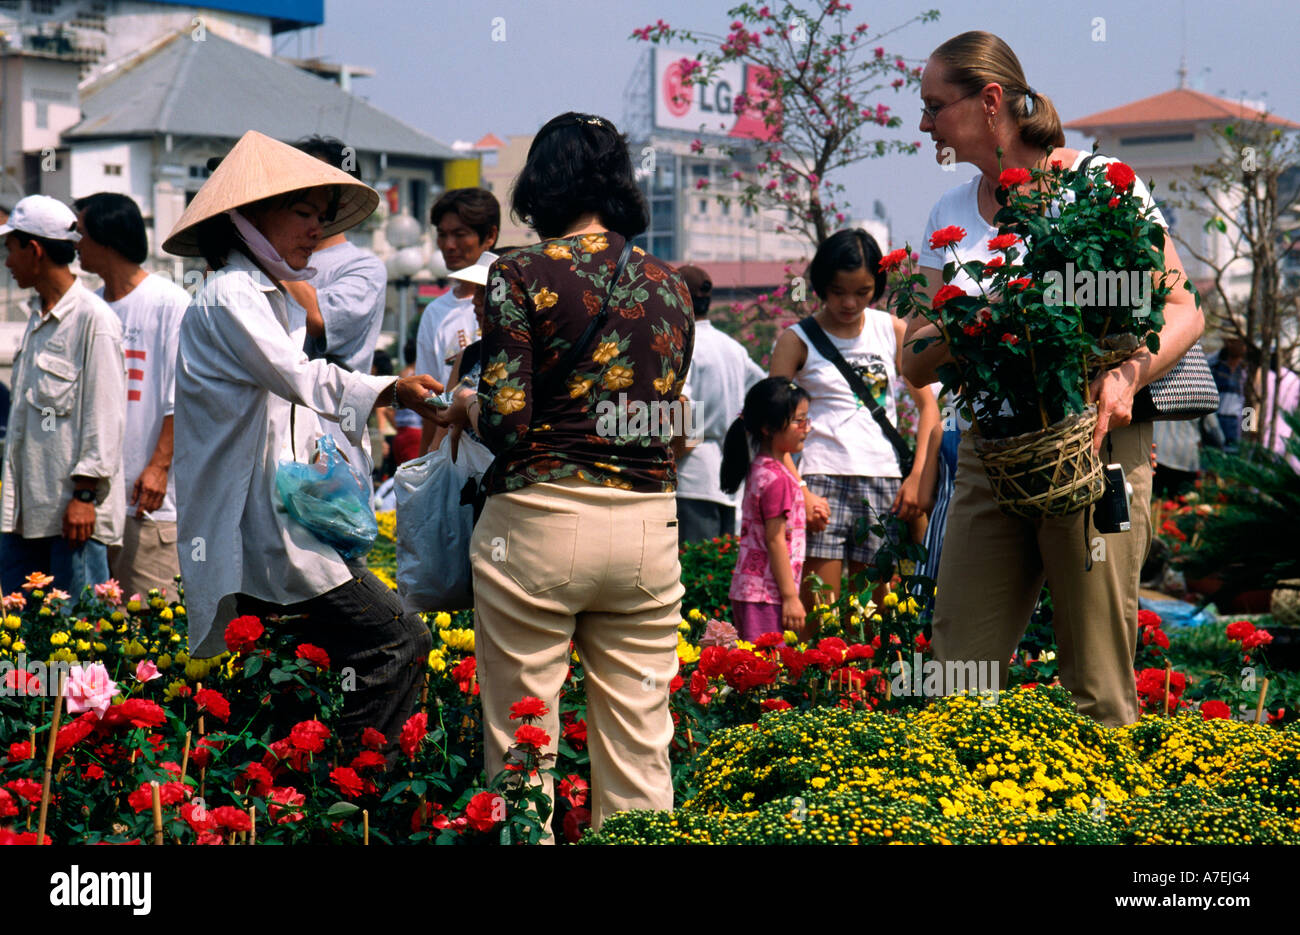 feb 1, 2003 - tourist buying flower pot at the flower market near